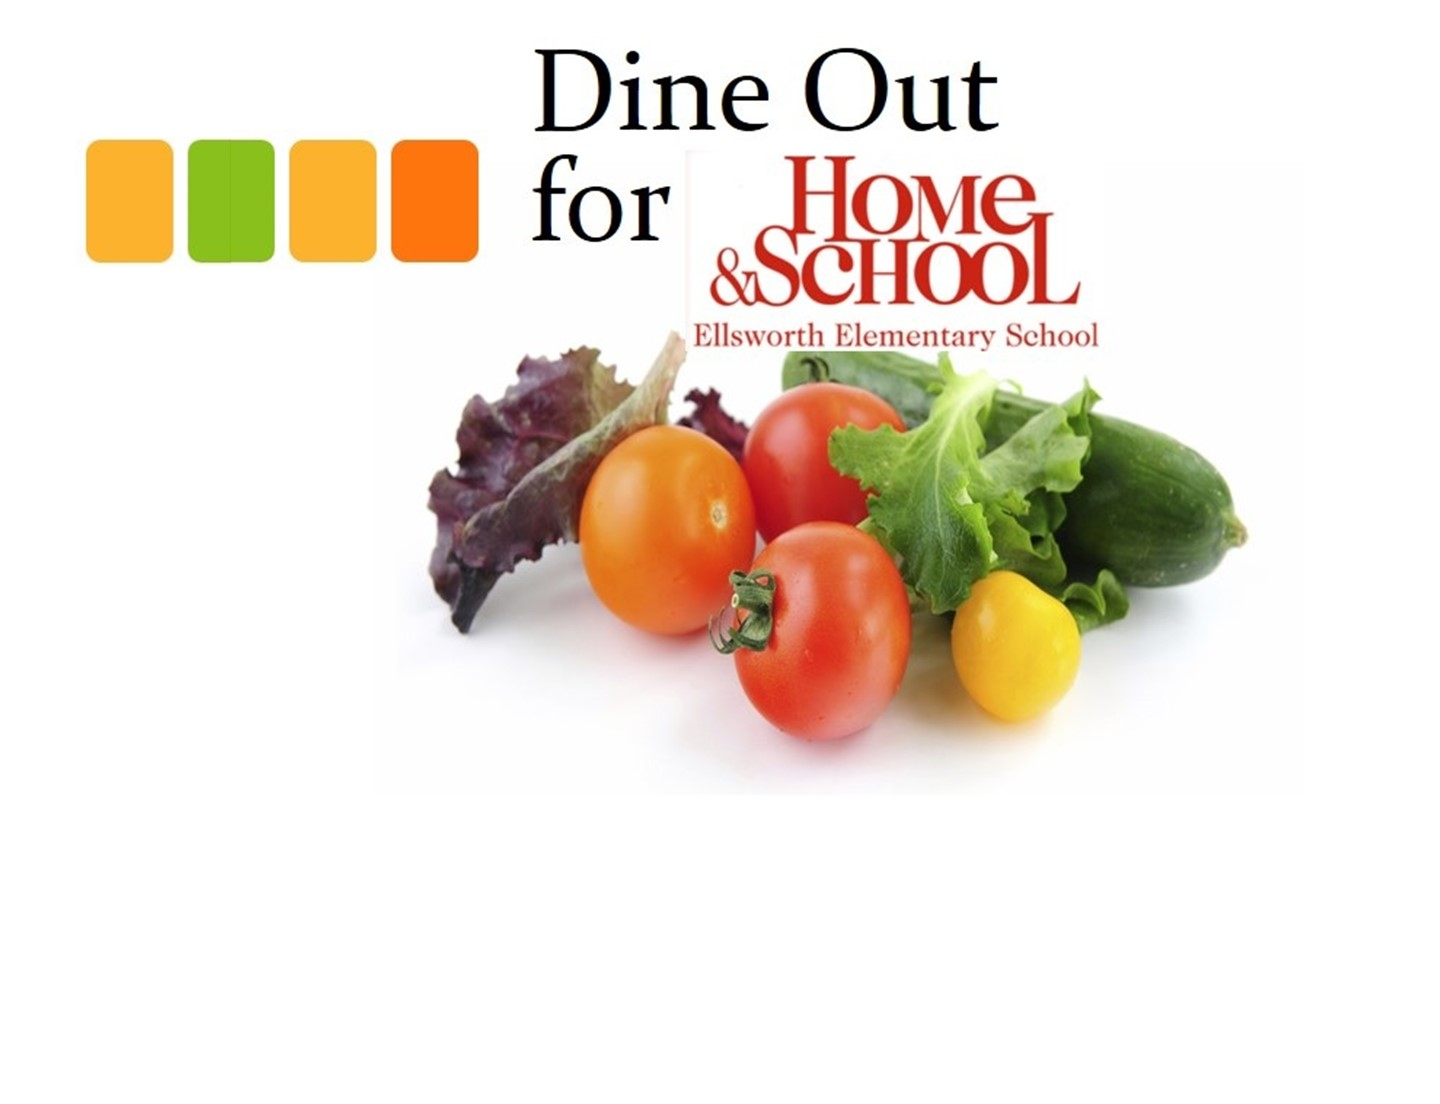 Dine Out for Home and School logo